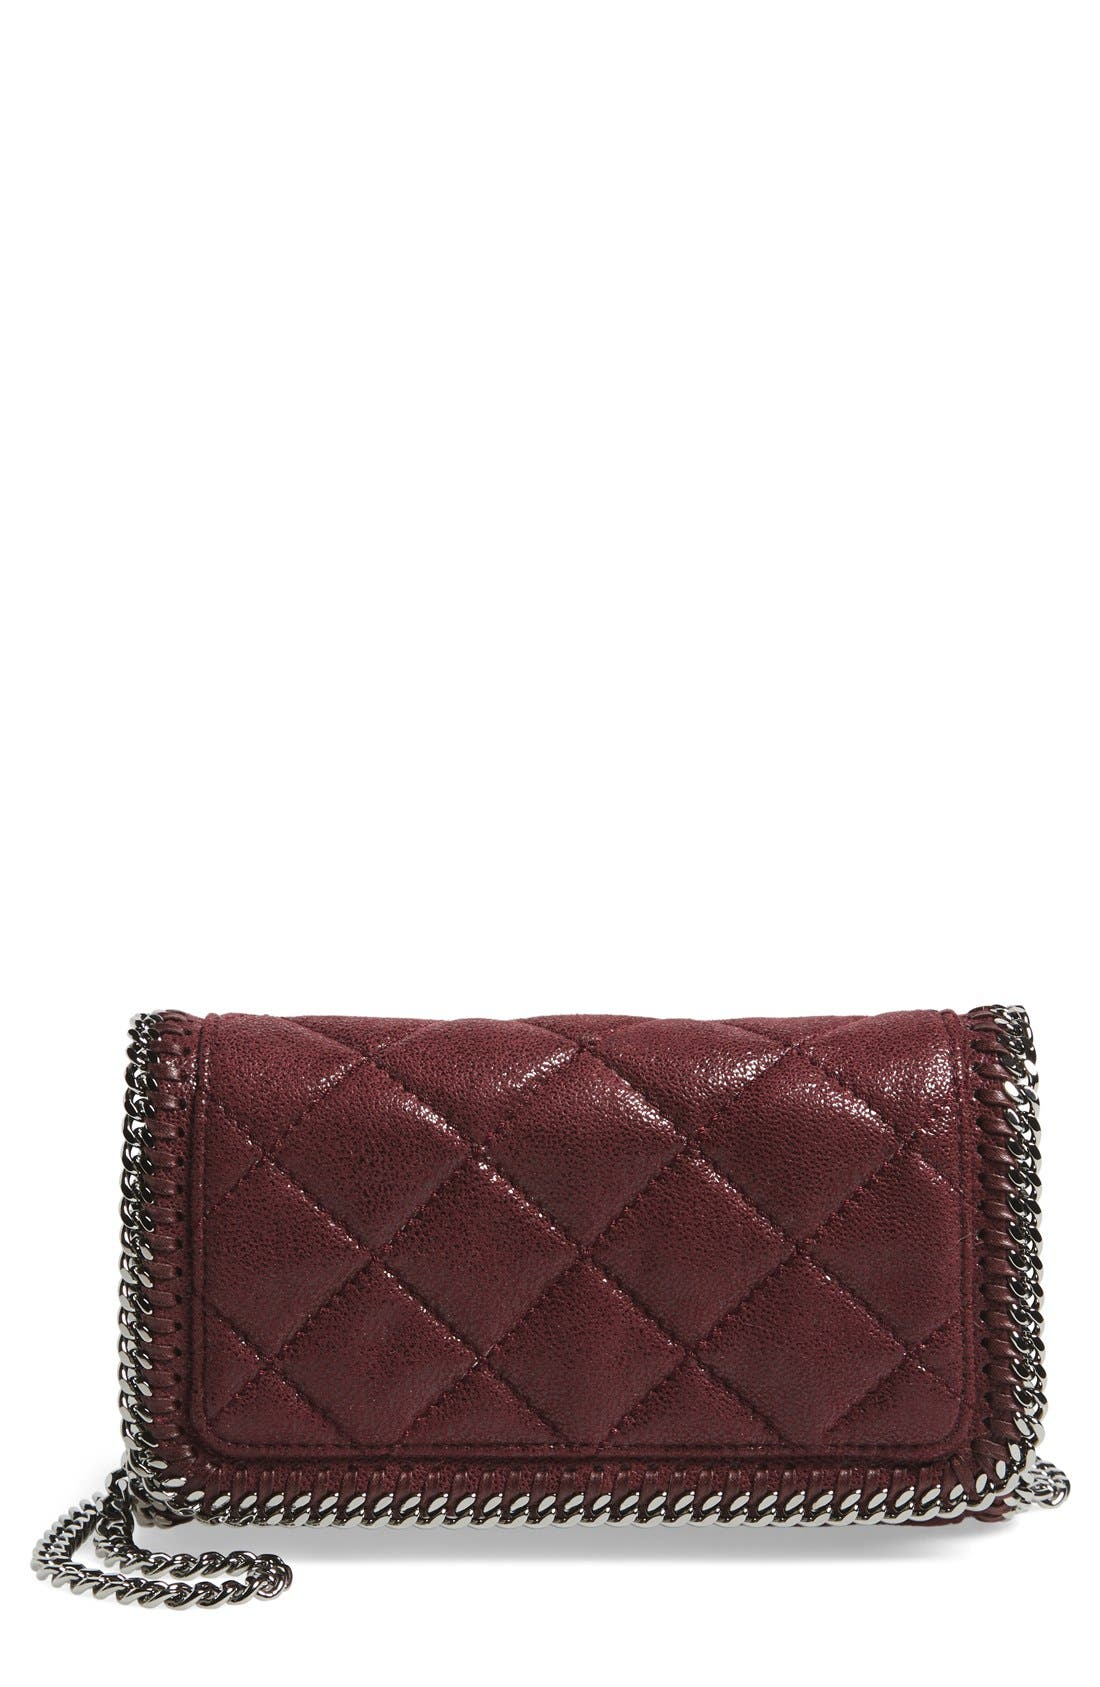 'Falabella' Quilted Faux Leather Crossbody Bag,                             Main thumbnail 4, color,